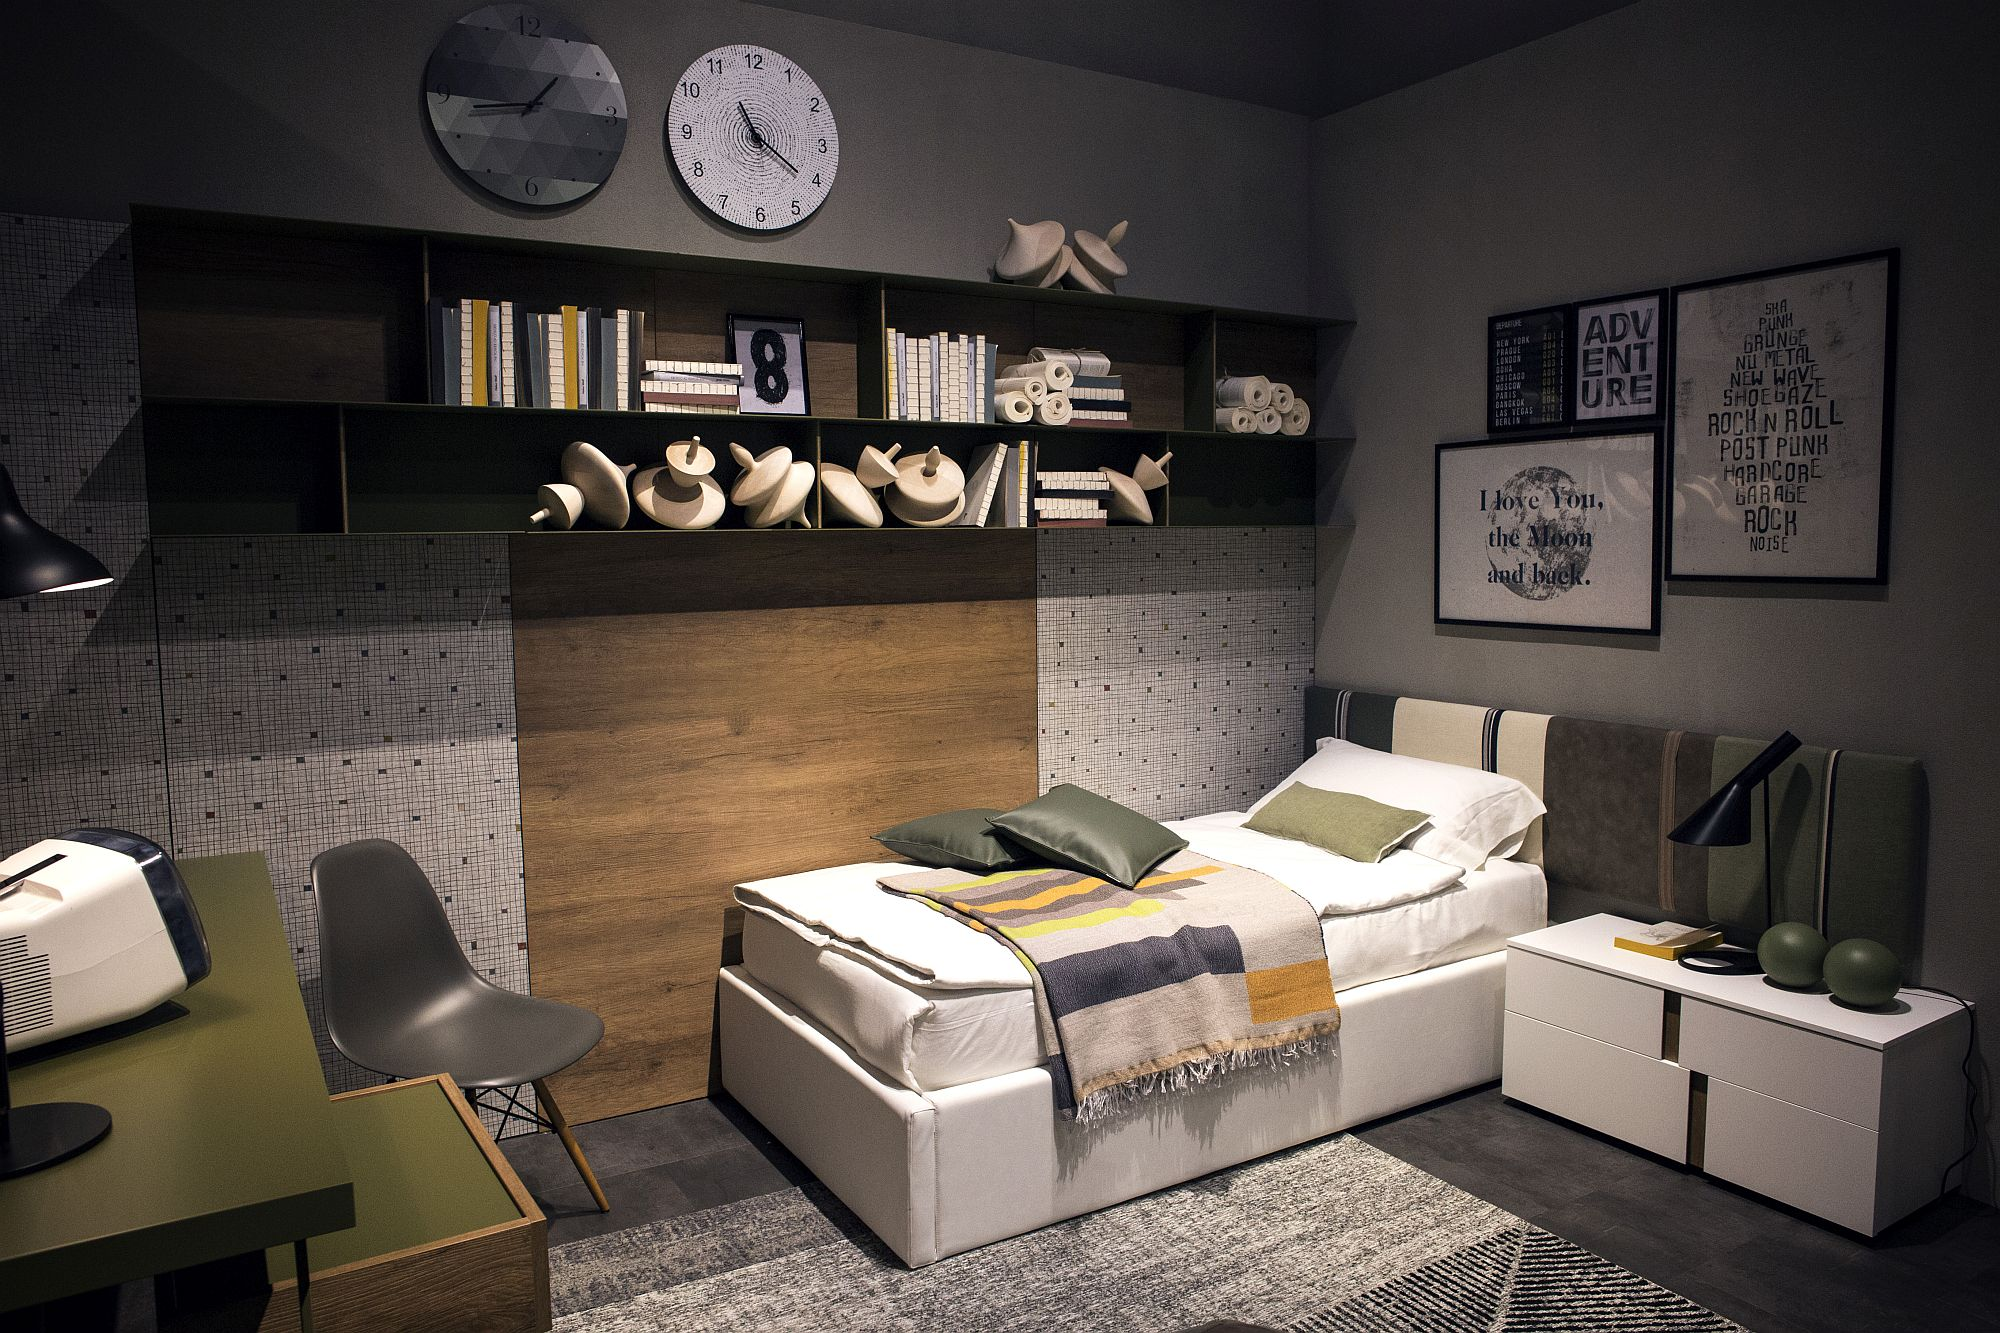 Bed in the corner frees up space in the small bedroom